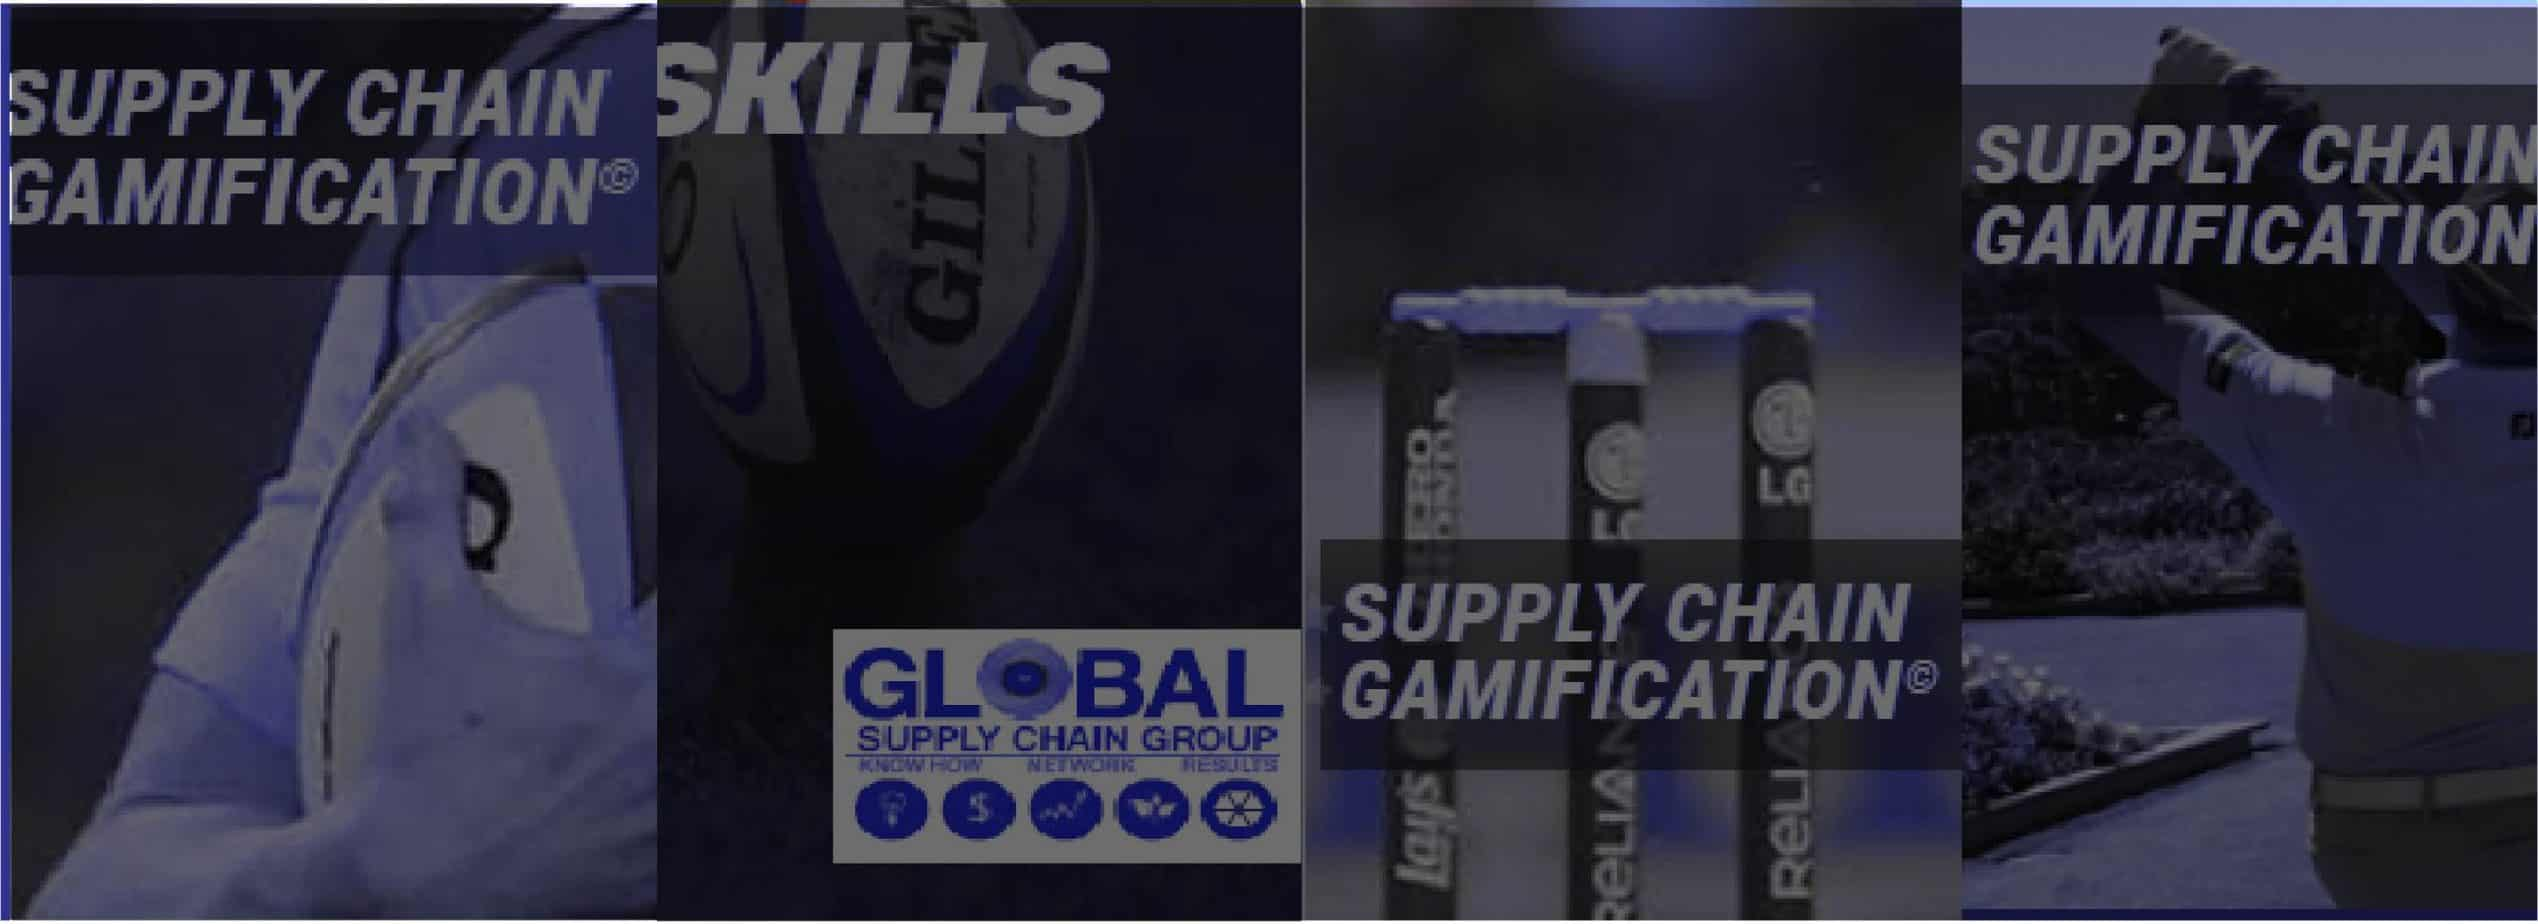 SUPPLY CHAIN GAMIFICATION